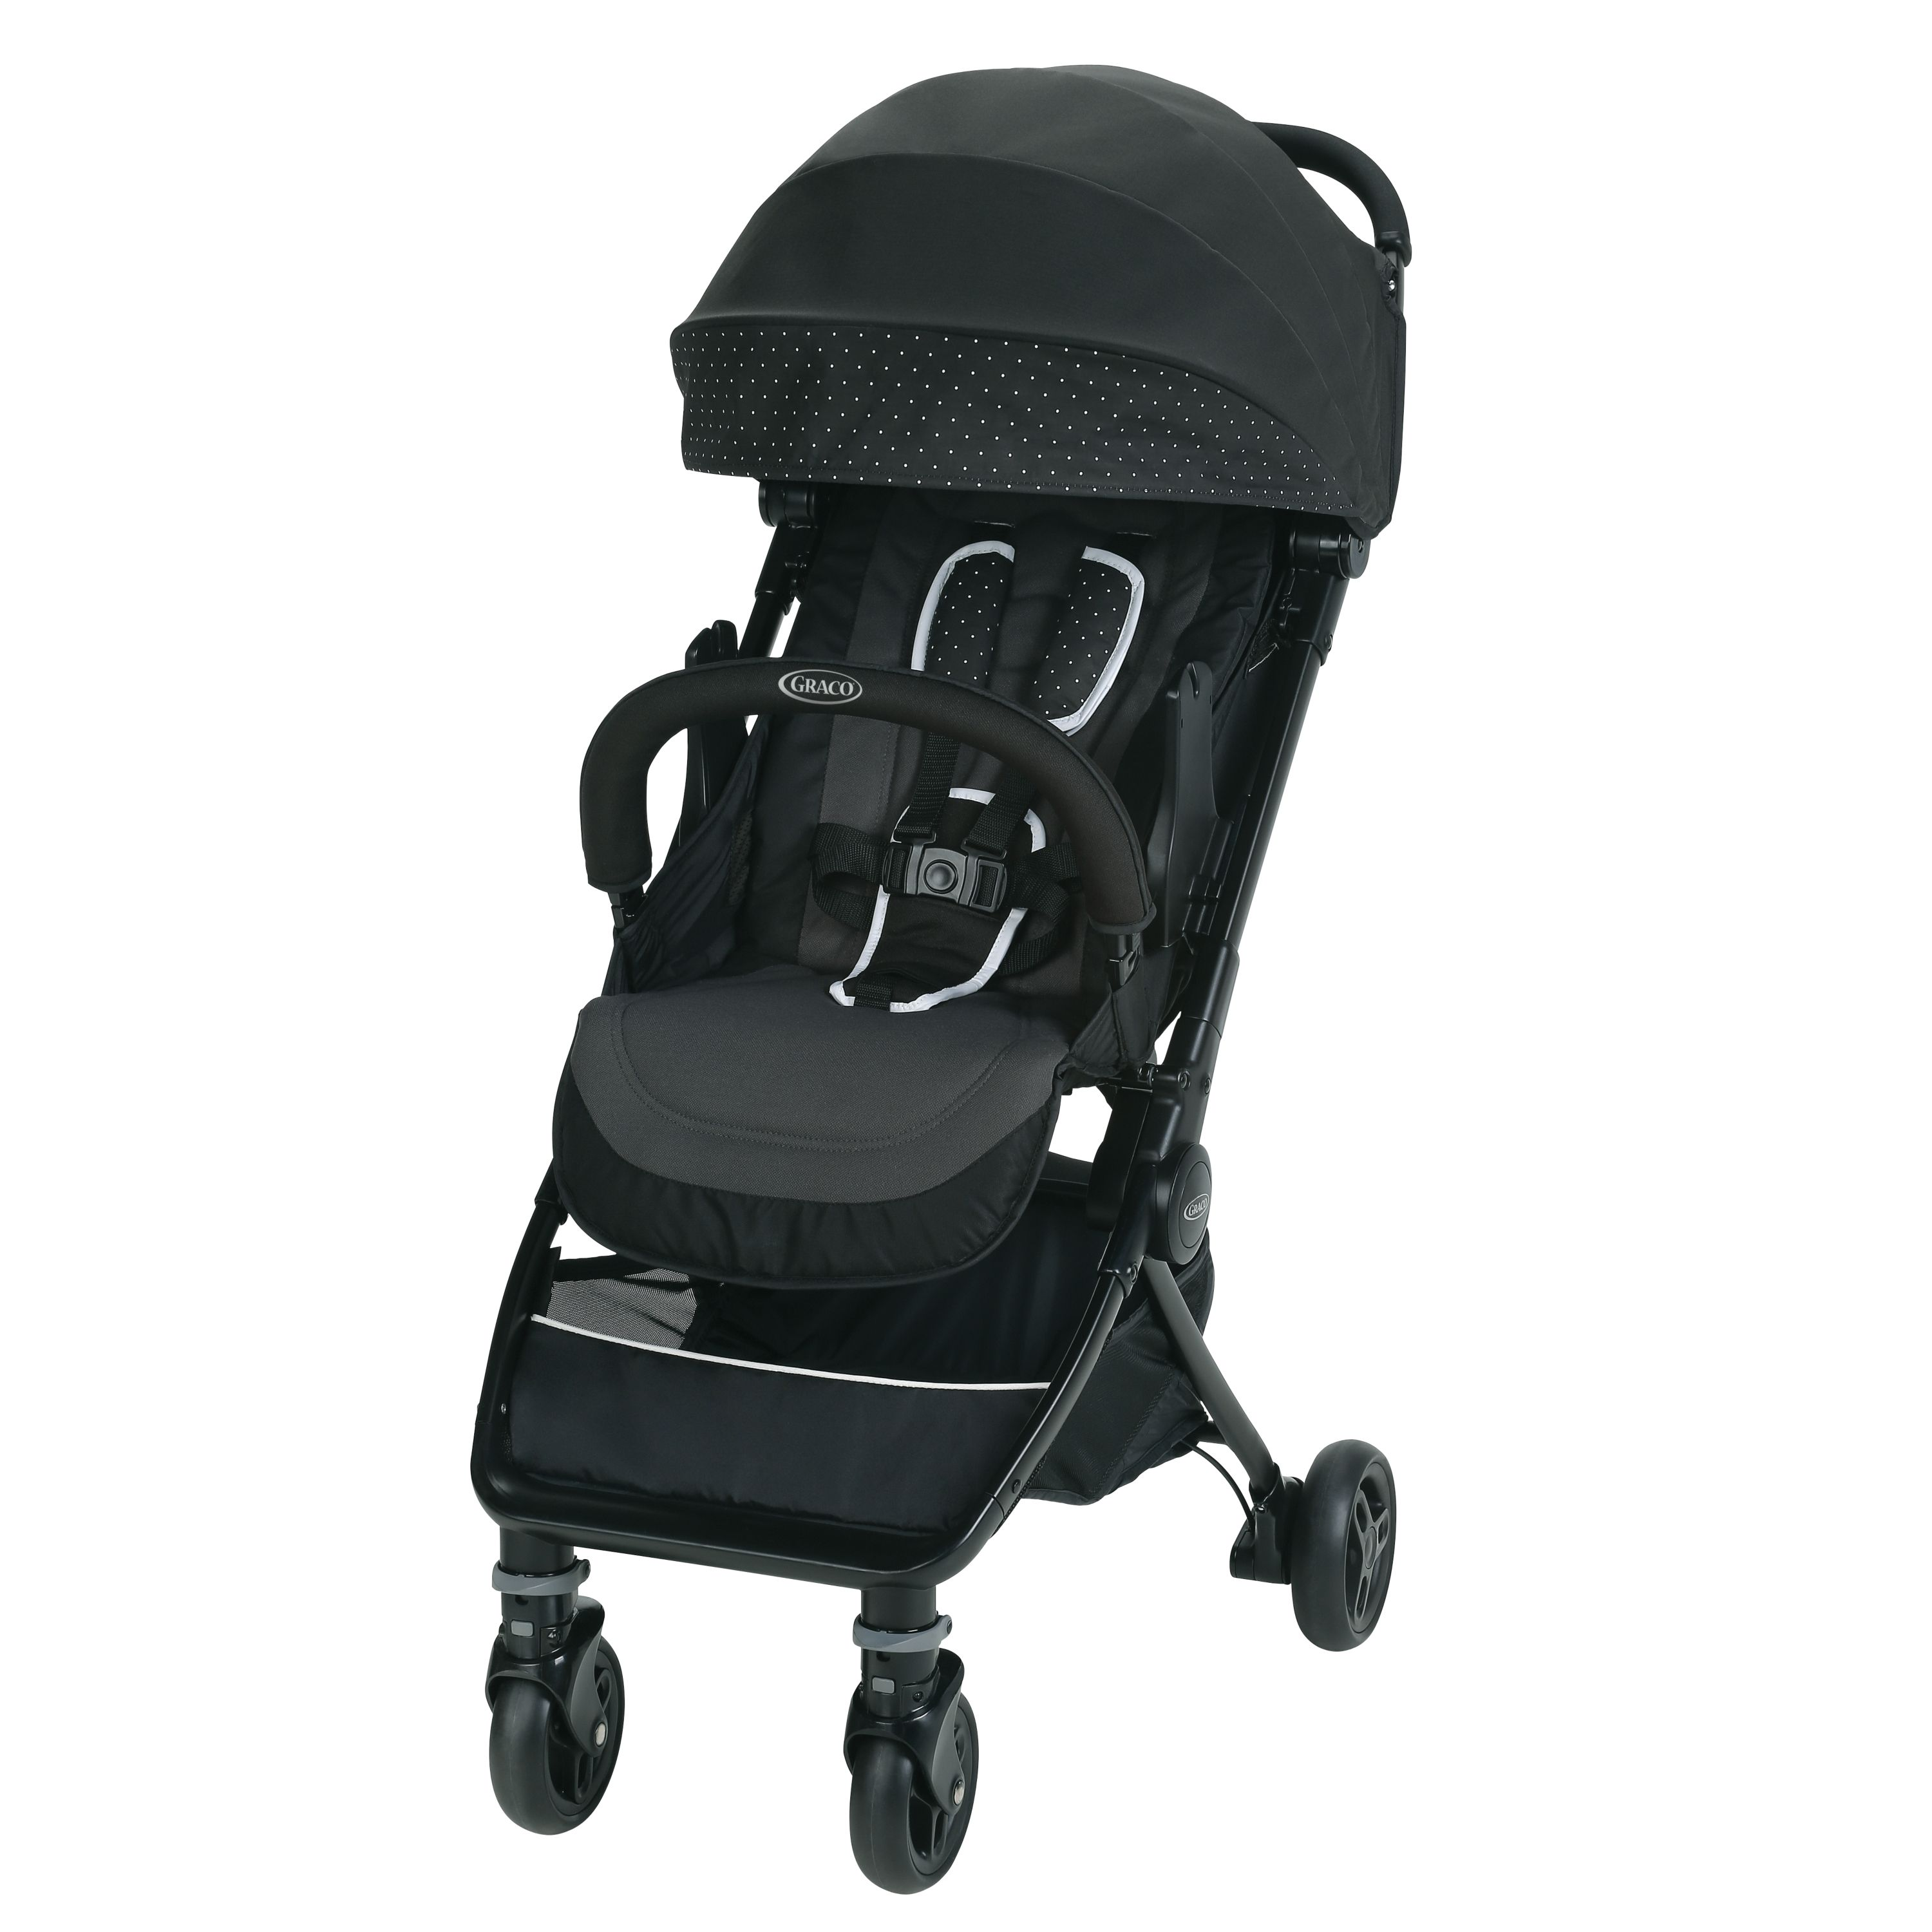 Graco Jetsetter Compact Fold Stroller, Balancing Act